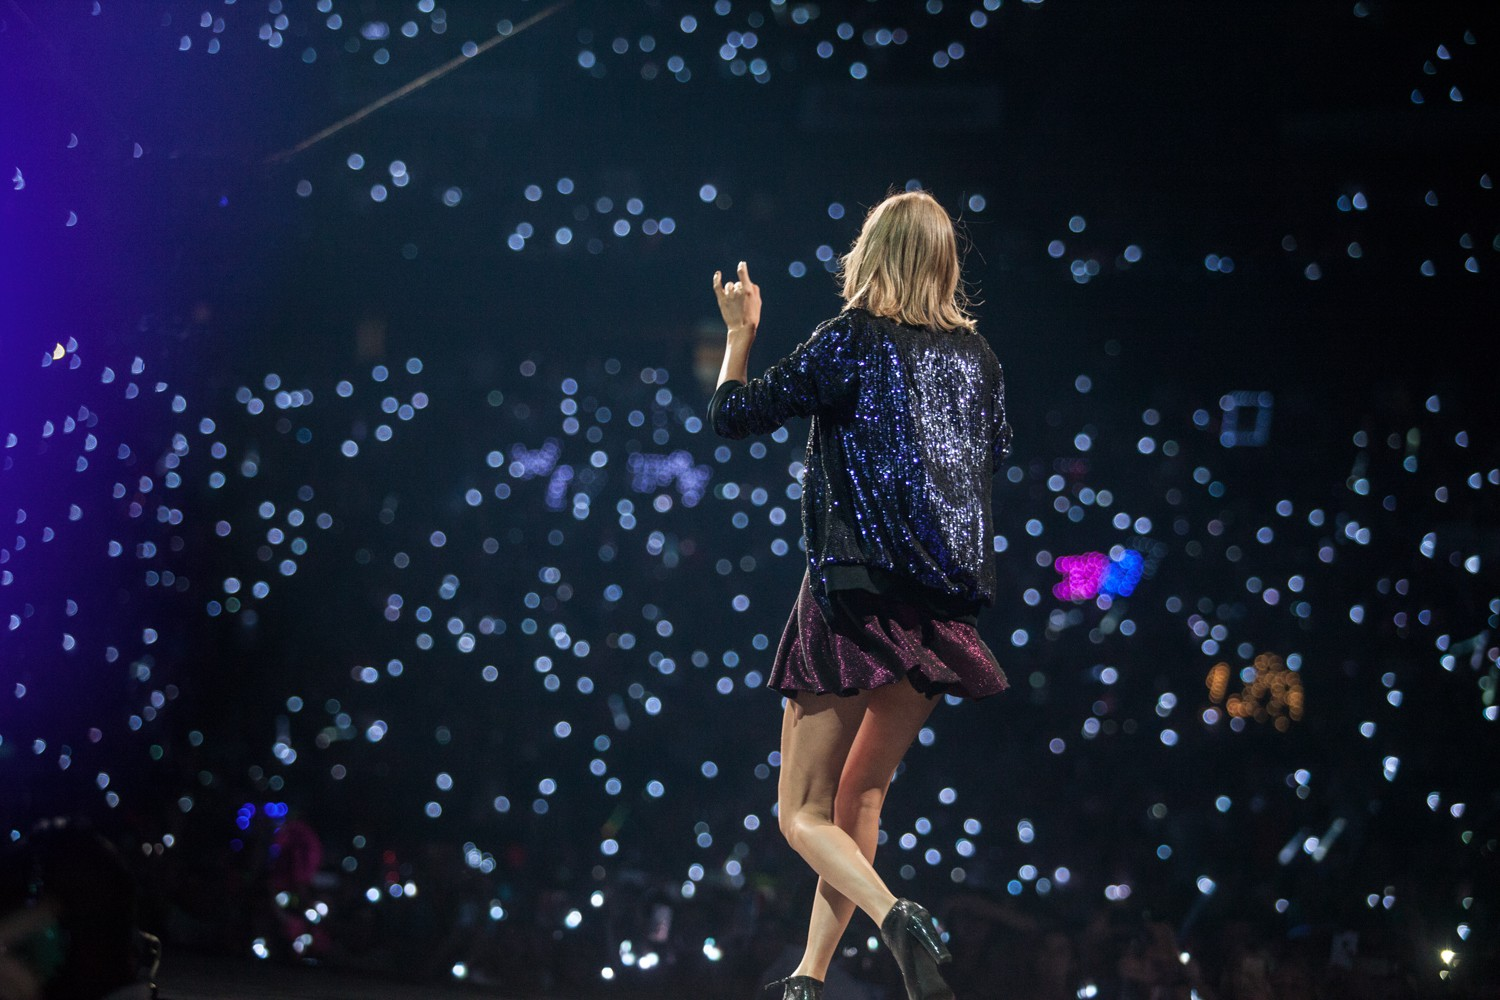 Infamous Taylor Swift Belly Button Appears on Vacation ...